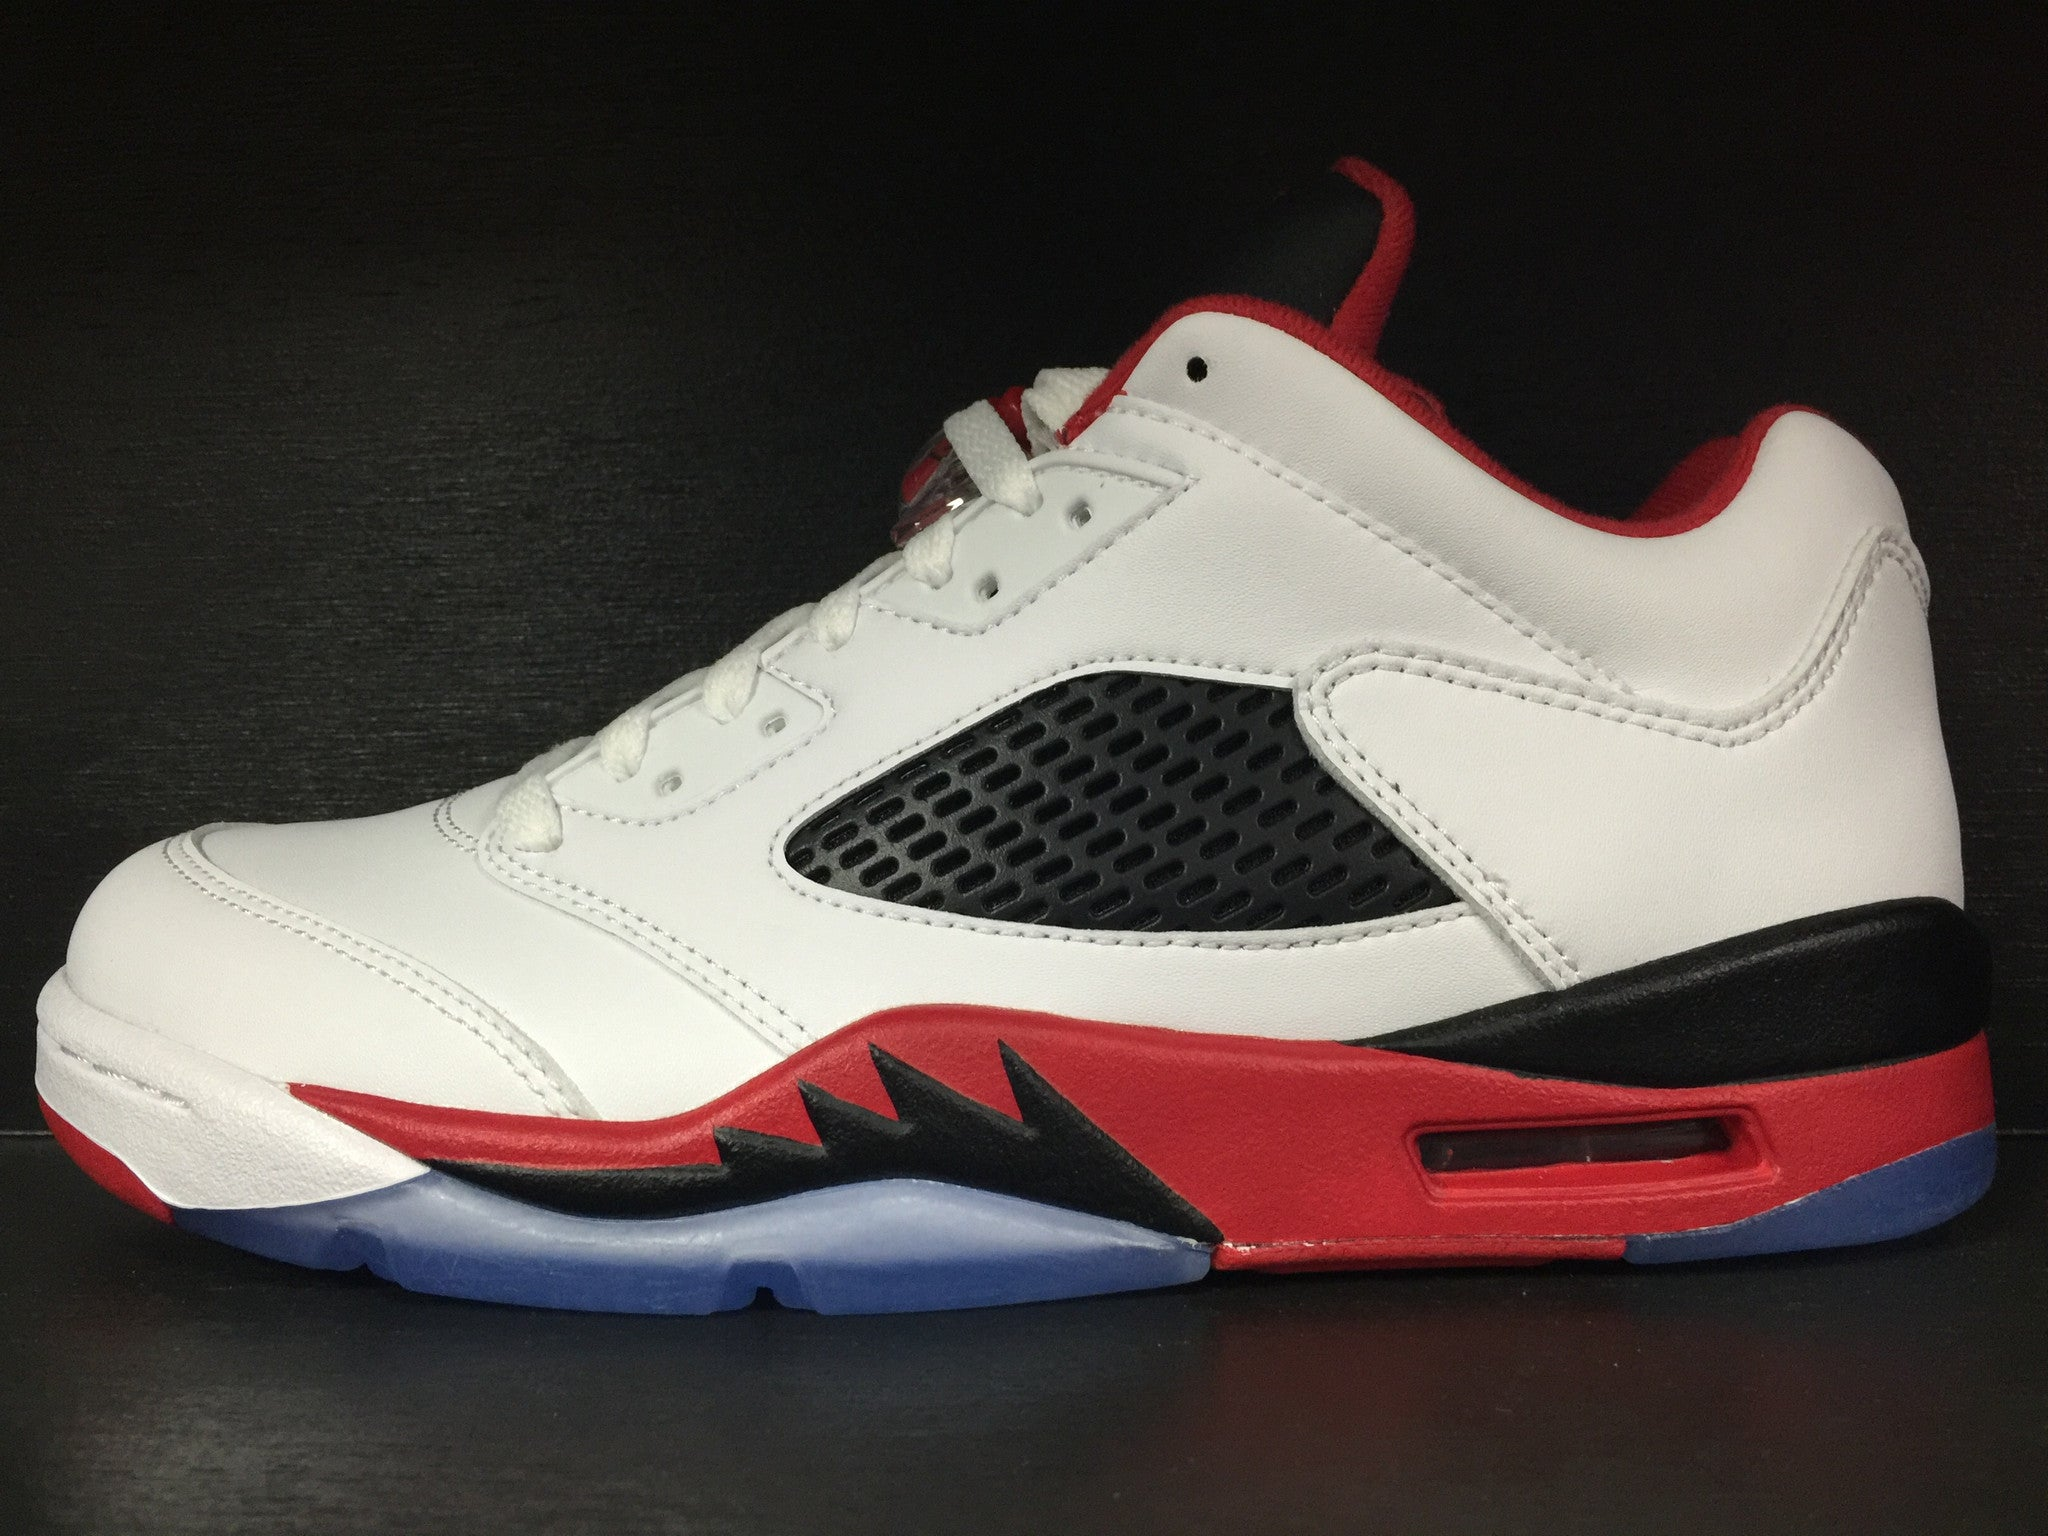 Air Jordan 5 Retro Low 'Fire Red'